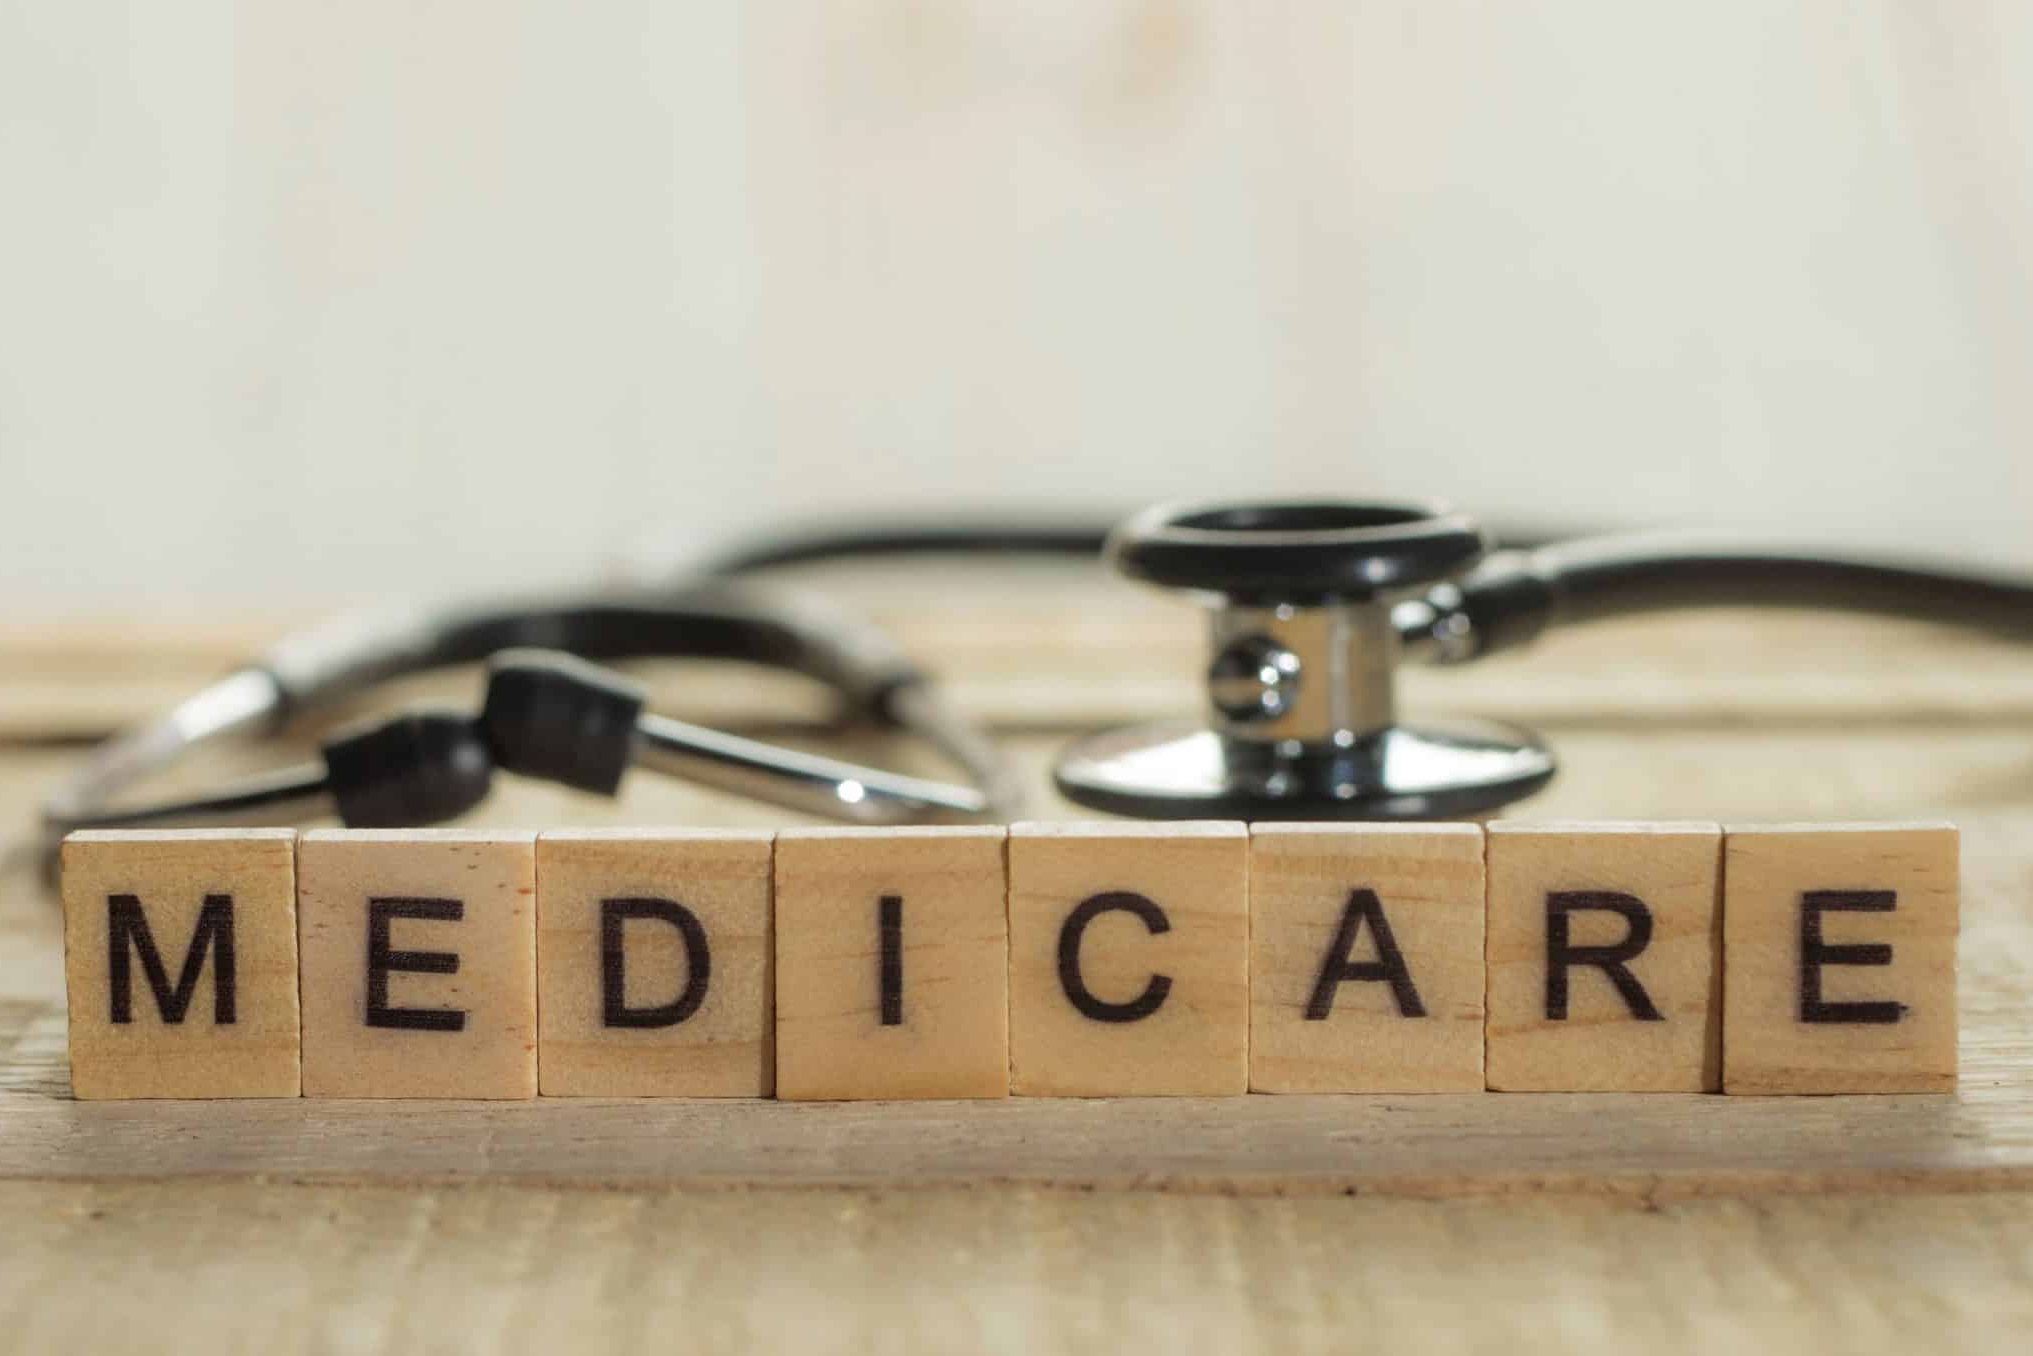 A sign of medicare written in wooden blocks